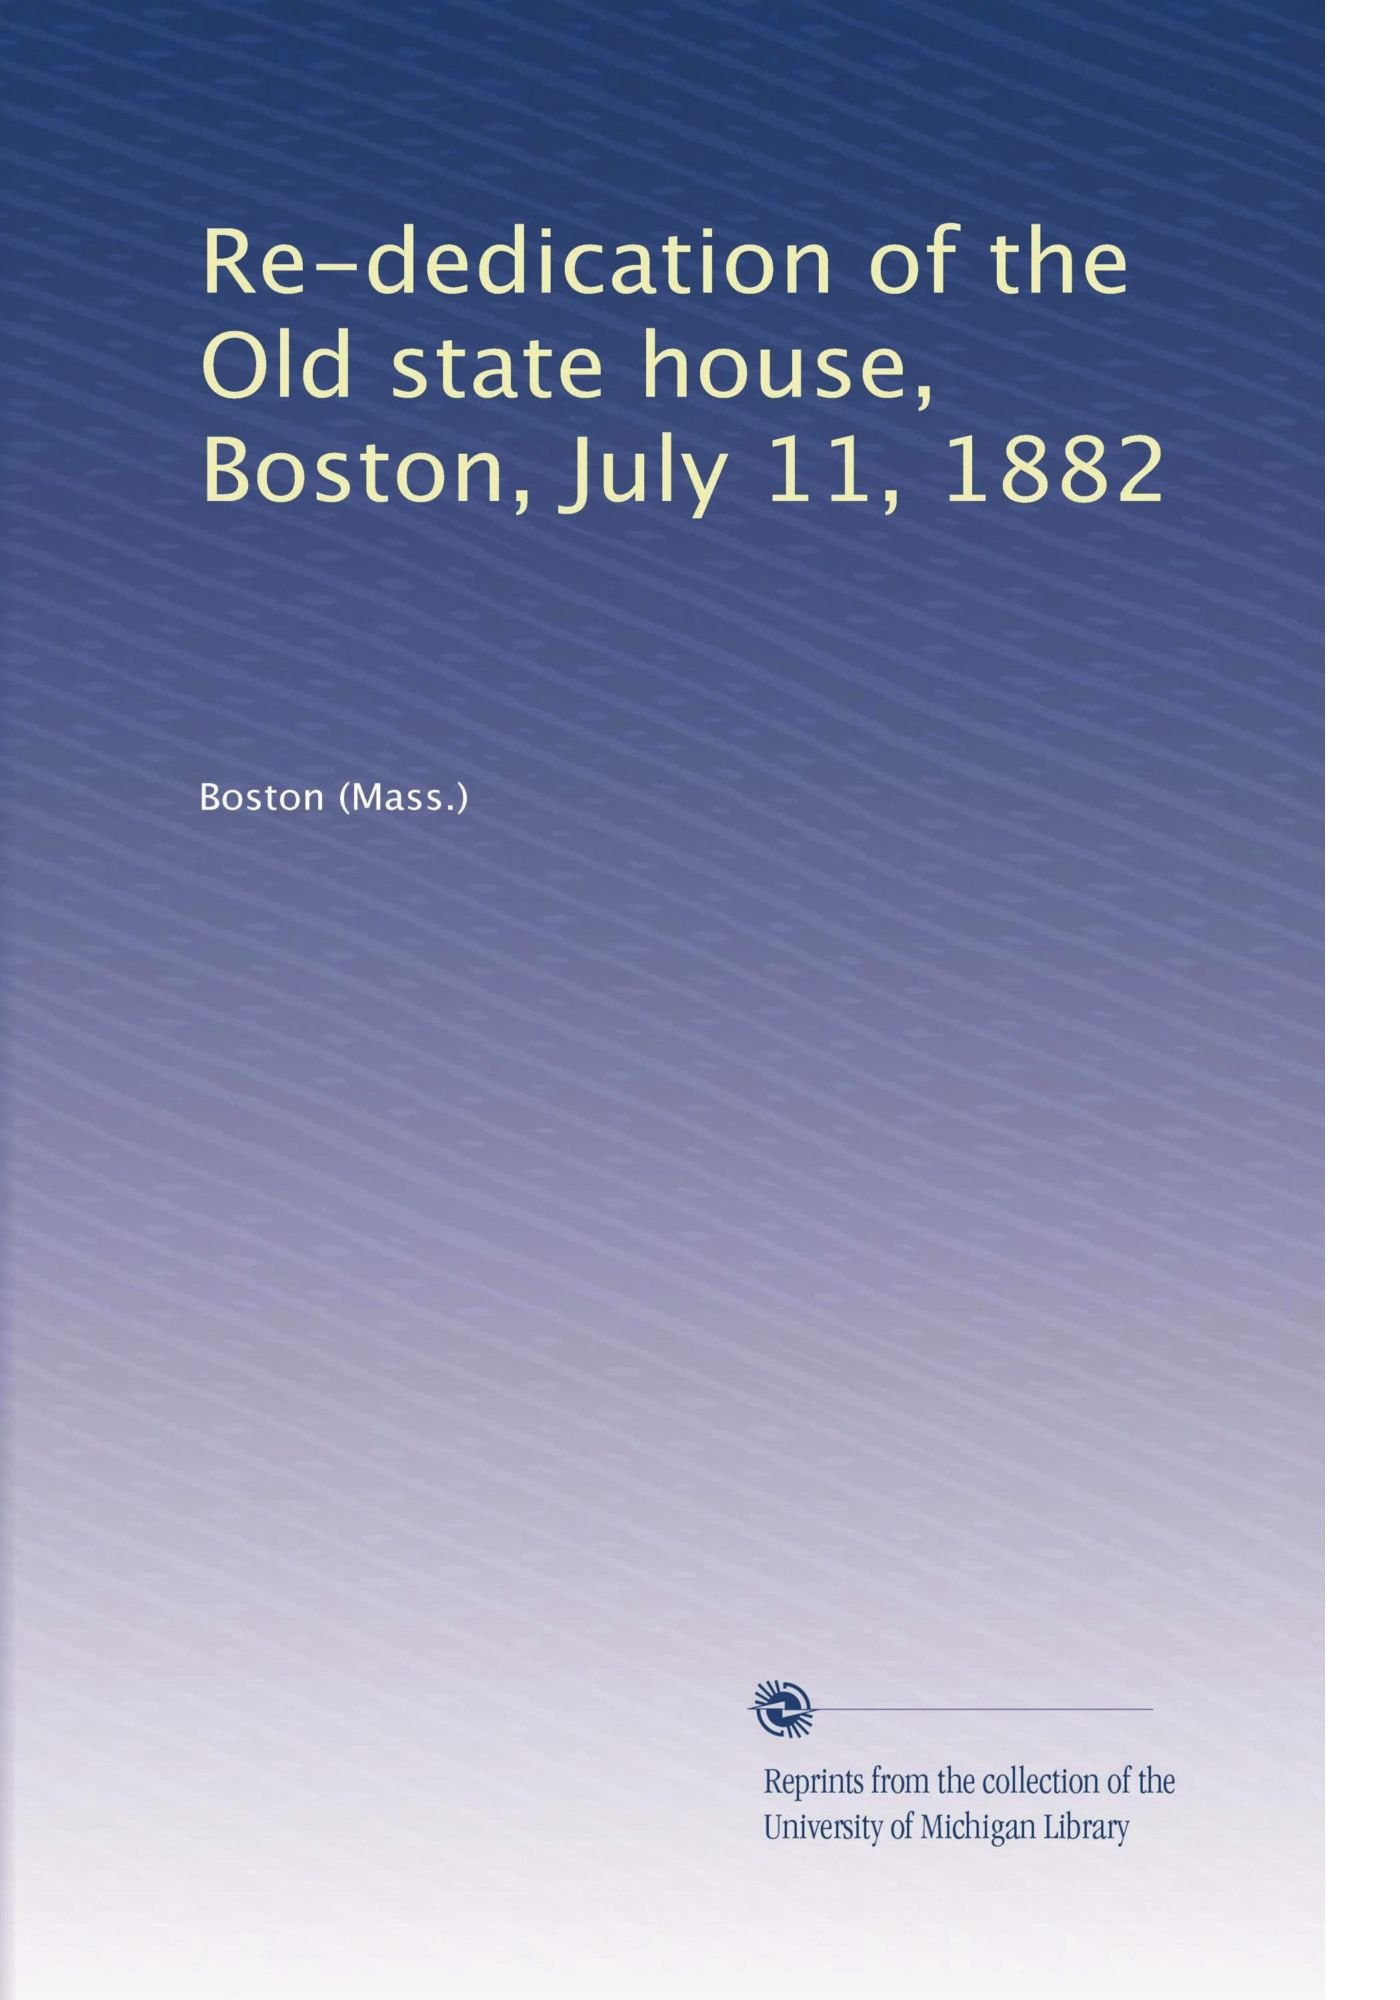 Download Re-dedication of the Old state house, Boston, July 11, 1882 PDF Text fb2 ebook